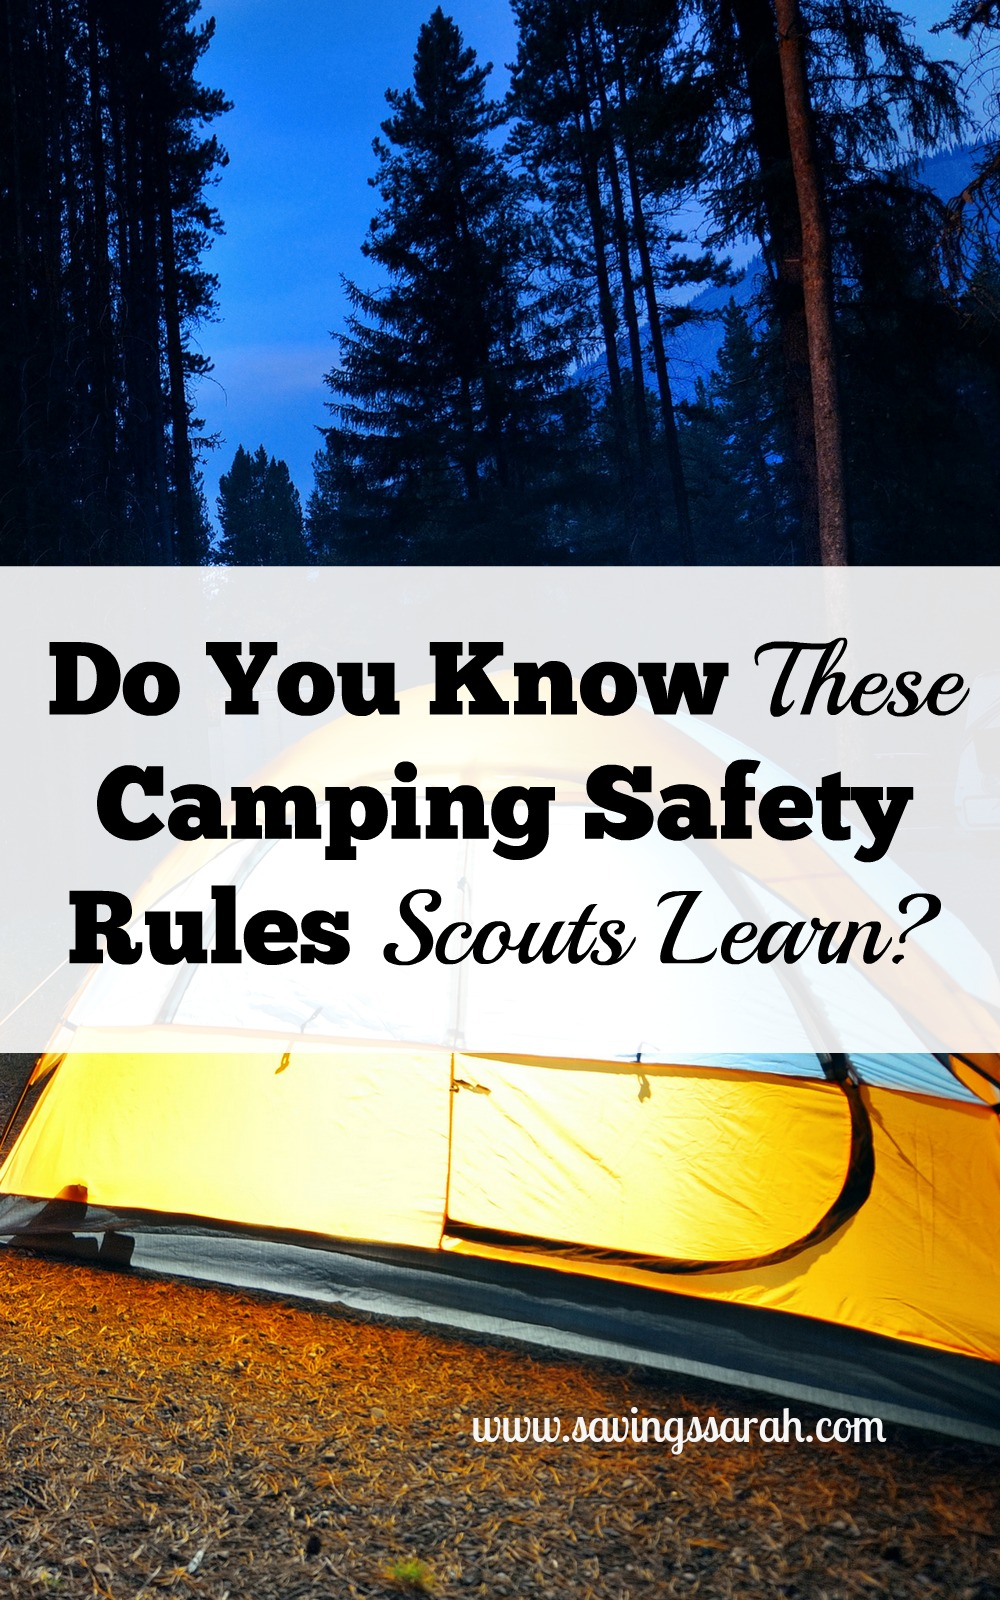 do you know important camping safety rules scouts learn